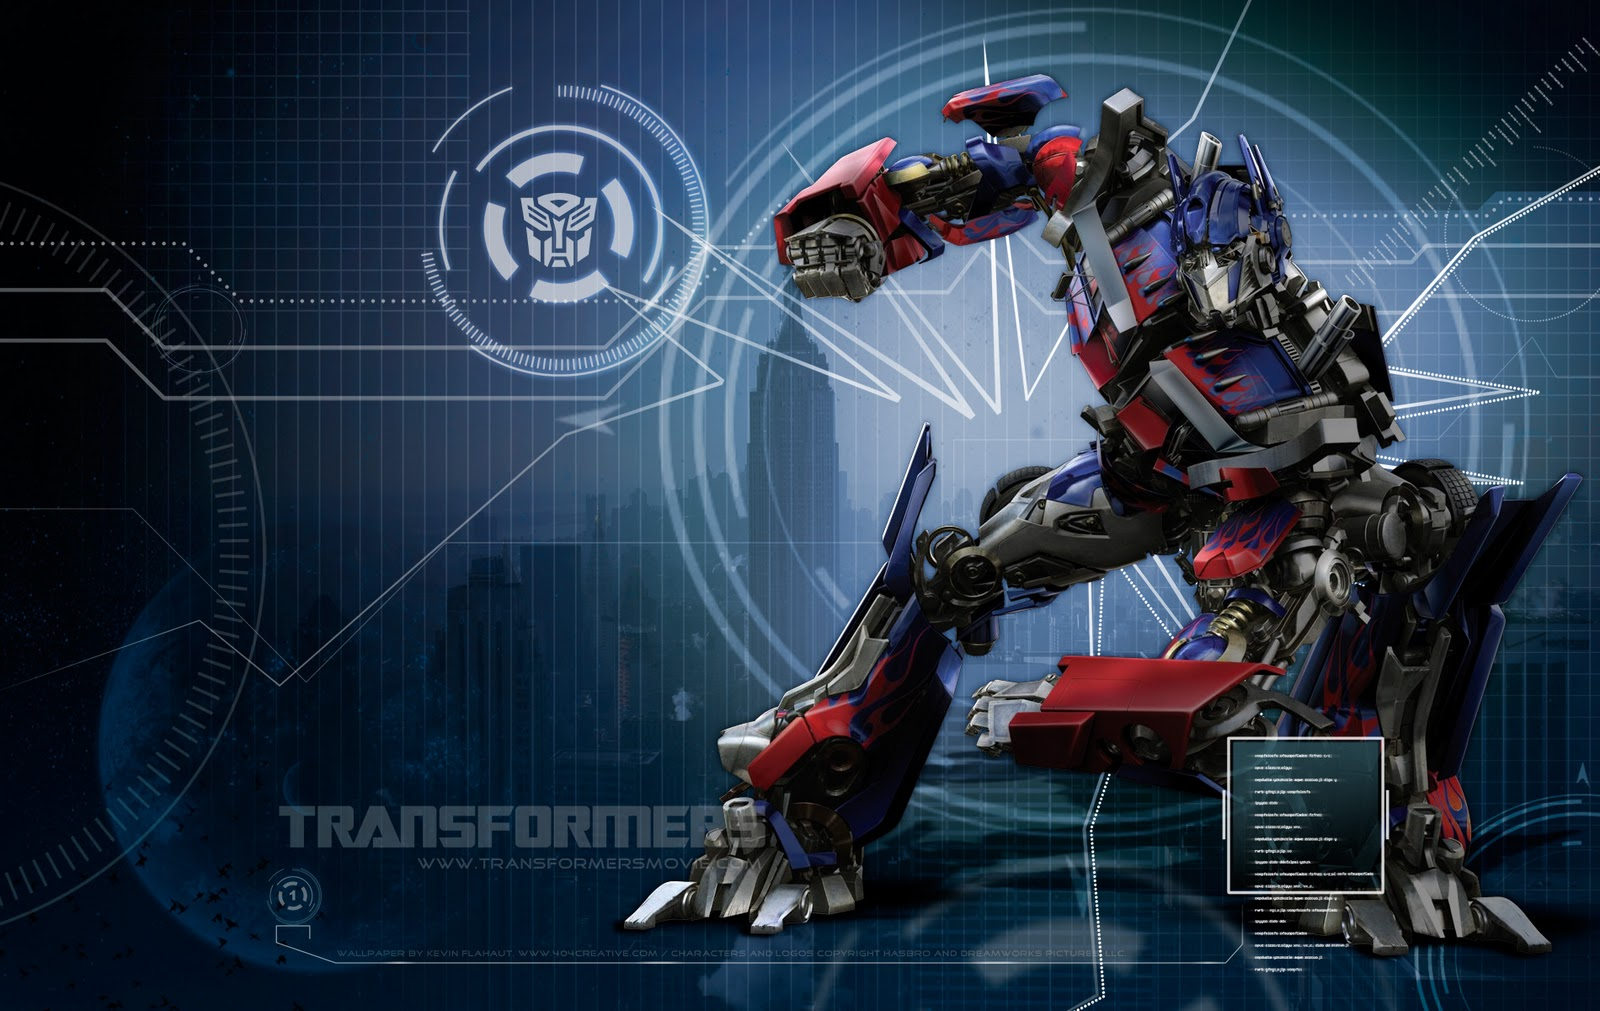 http://4.bp.blogspot.com/-Y5WkSPrLW94/TWQEuGxiJVI/AAAAAAAAATk/FrHJe_Vf_-k/s1600/transformers-wallpapers-optimus-428918.jpeg